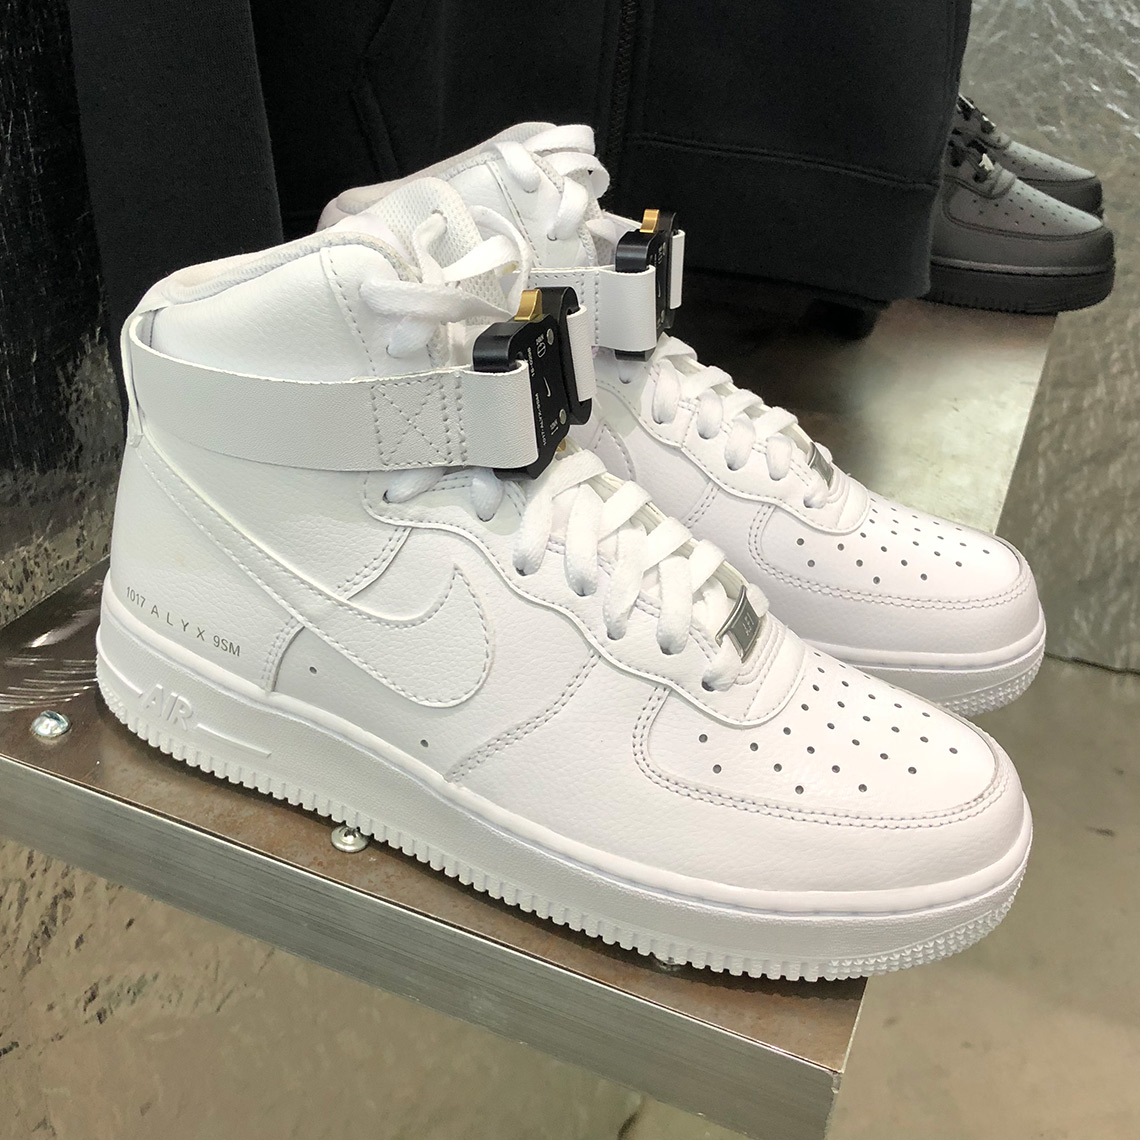 best loved d6e62 f0ed3 ALYX Nike Air Force 1 High Hypefest | SneakerNews.com